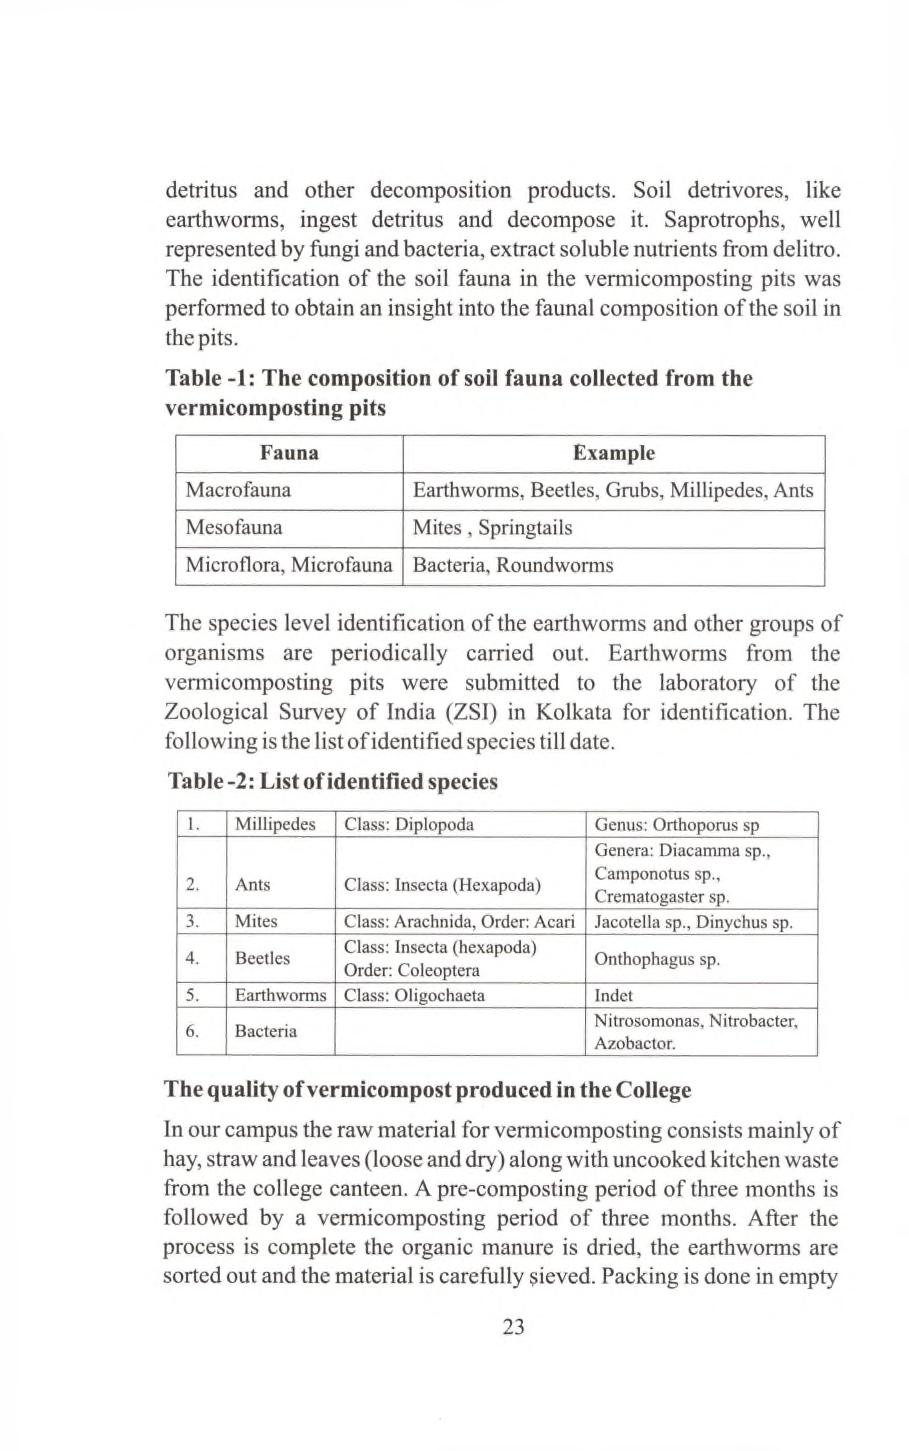 Environmental Action In Selected Indian Colleges And Universities Pdf Hard Wiring Zsi Oven Along With Diagram Detritus Other Decomposition Products Soil Detrivores Like Earthworms Ingest Decompose